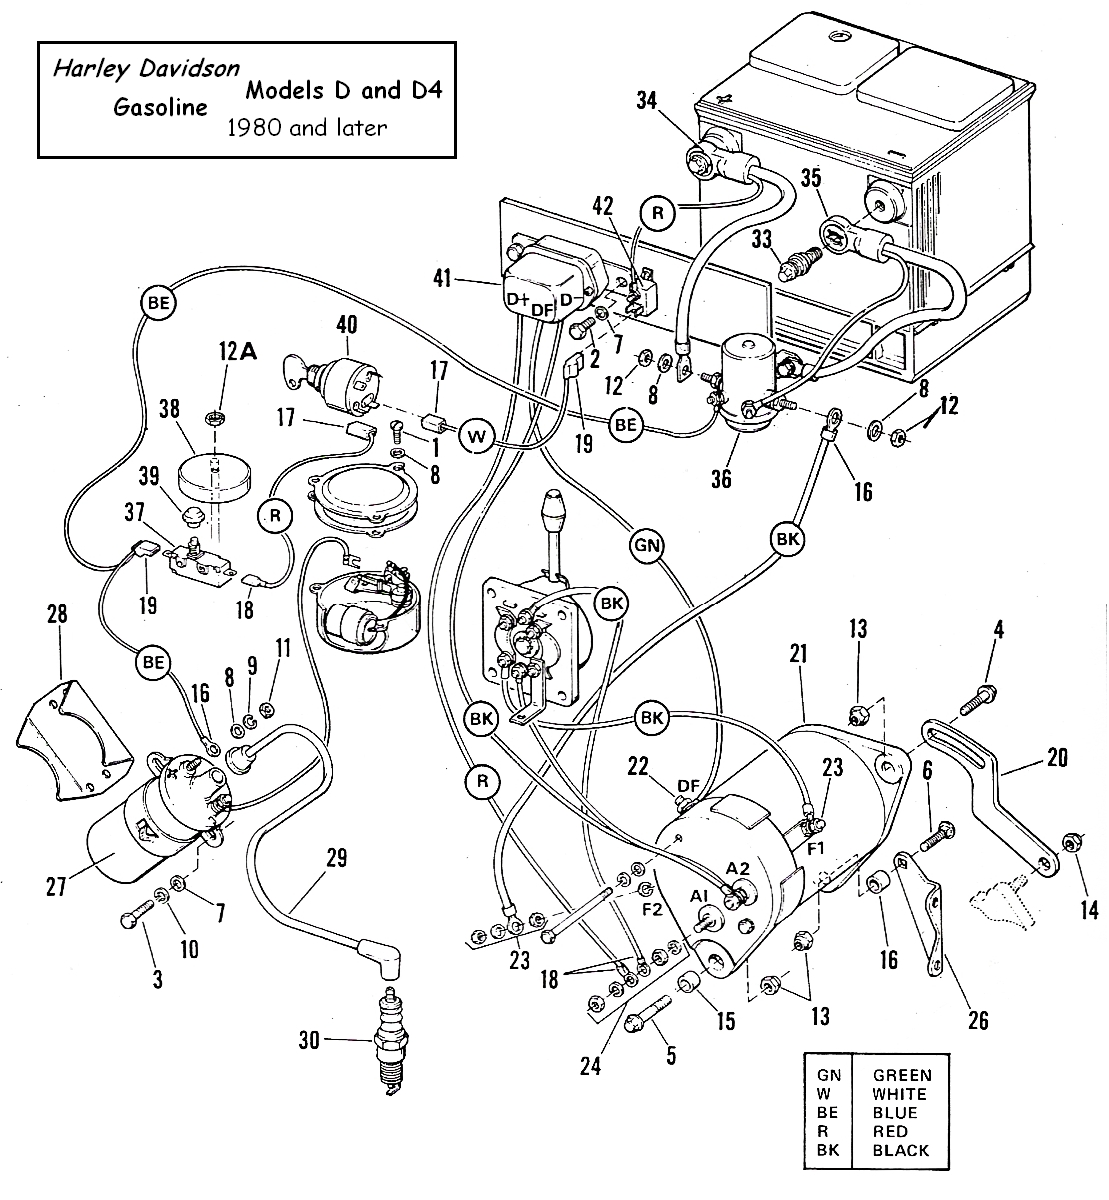 HG 101 for my ez go golf cart, need a wiring diagram readingrat net 1996 ezgo txt wiring diagram at gsmx.co